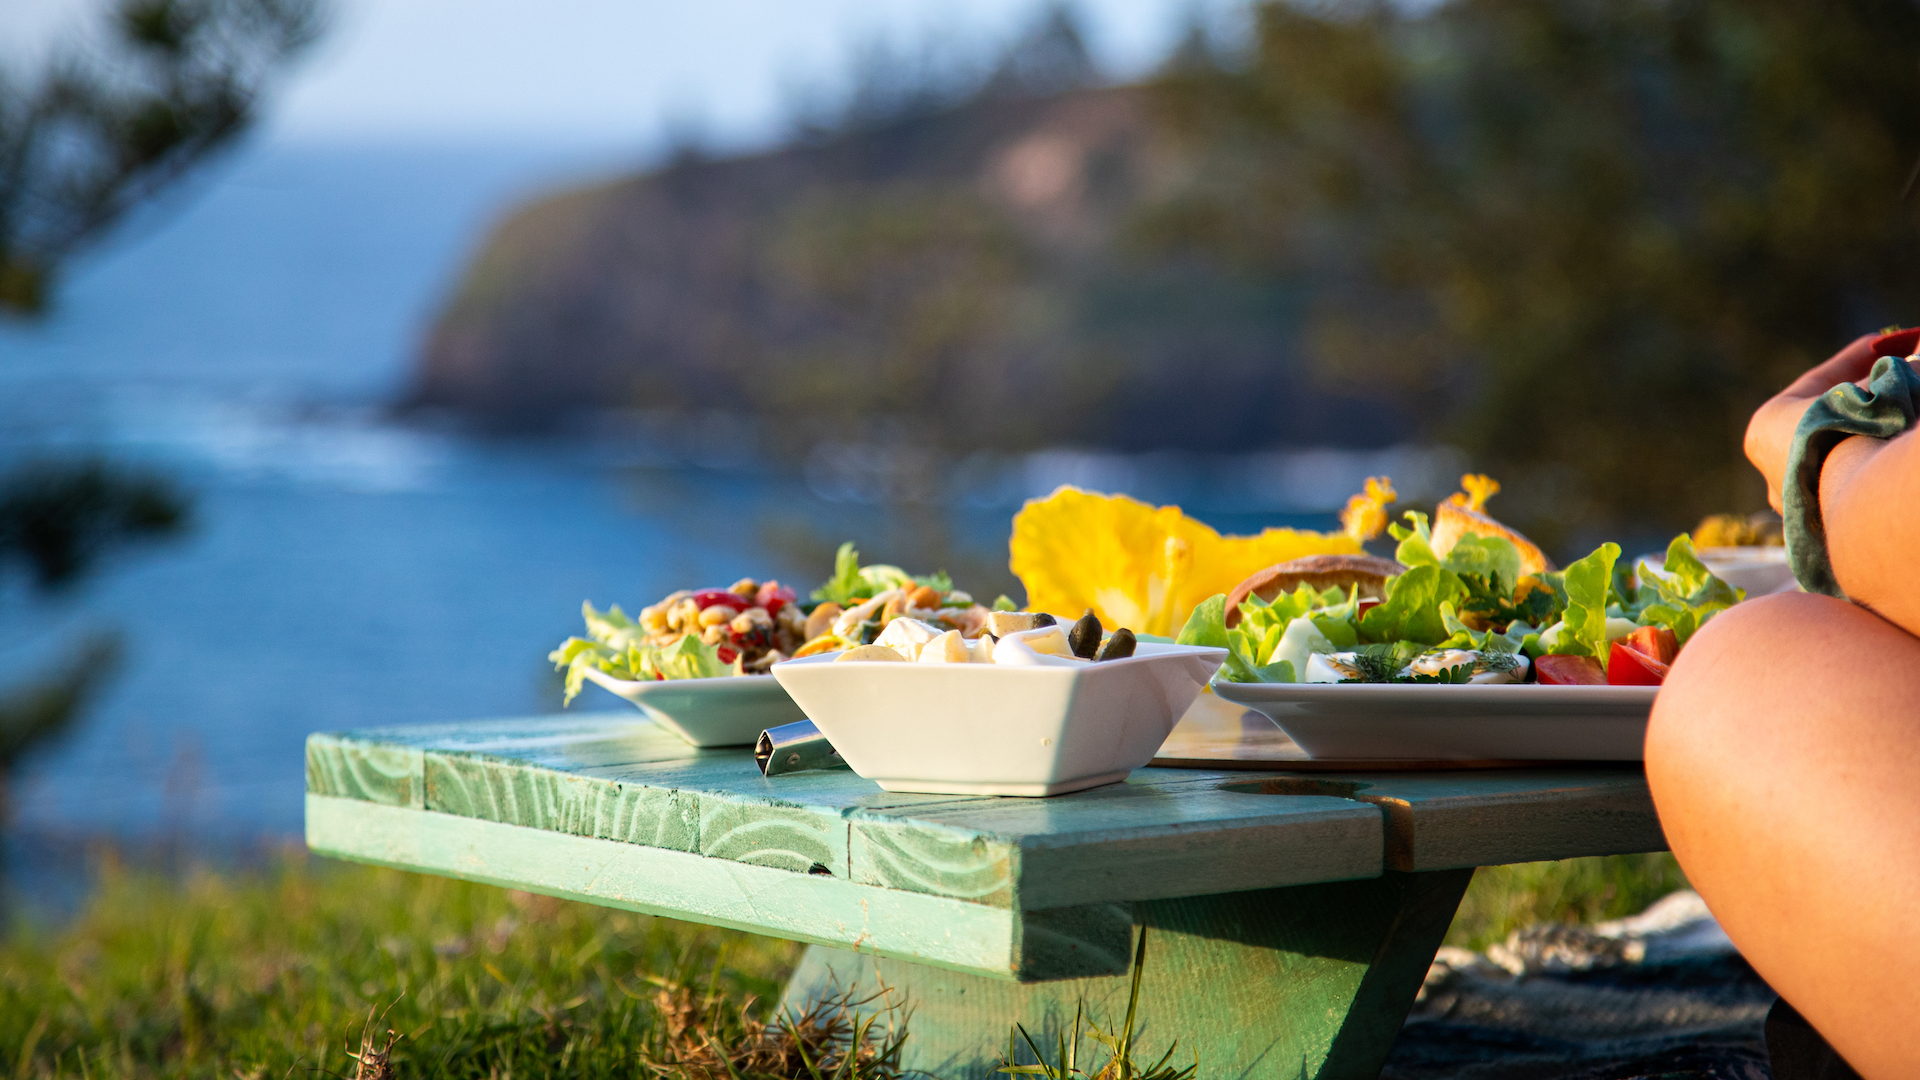 A detailed shot of fresh picnic food with ocean and cliffside in the background.